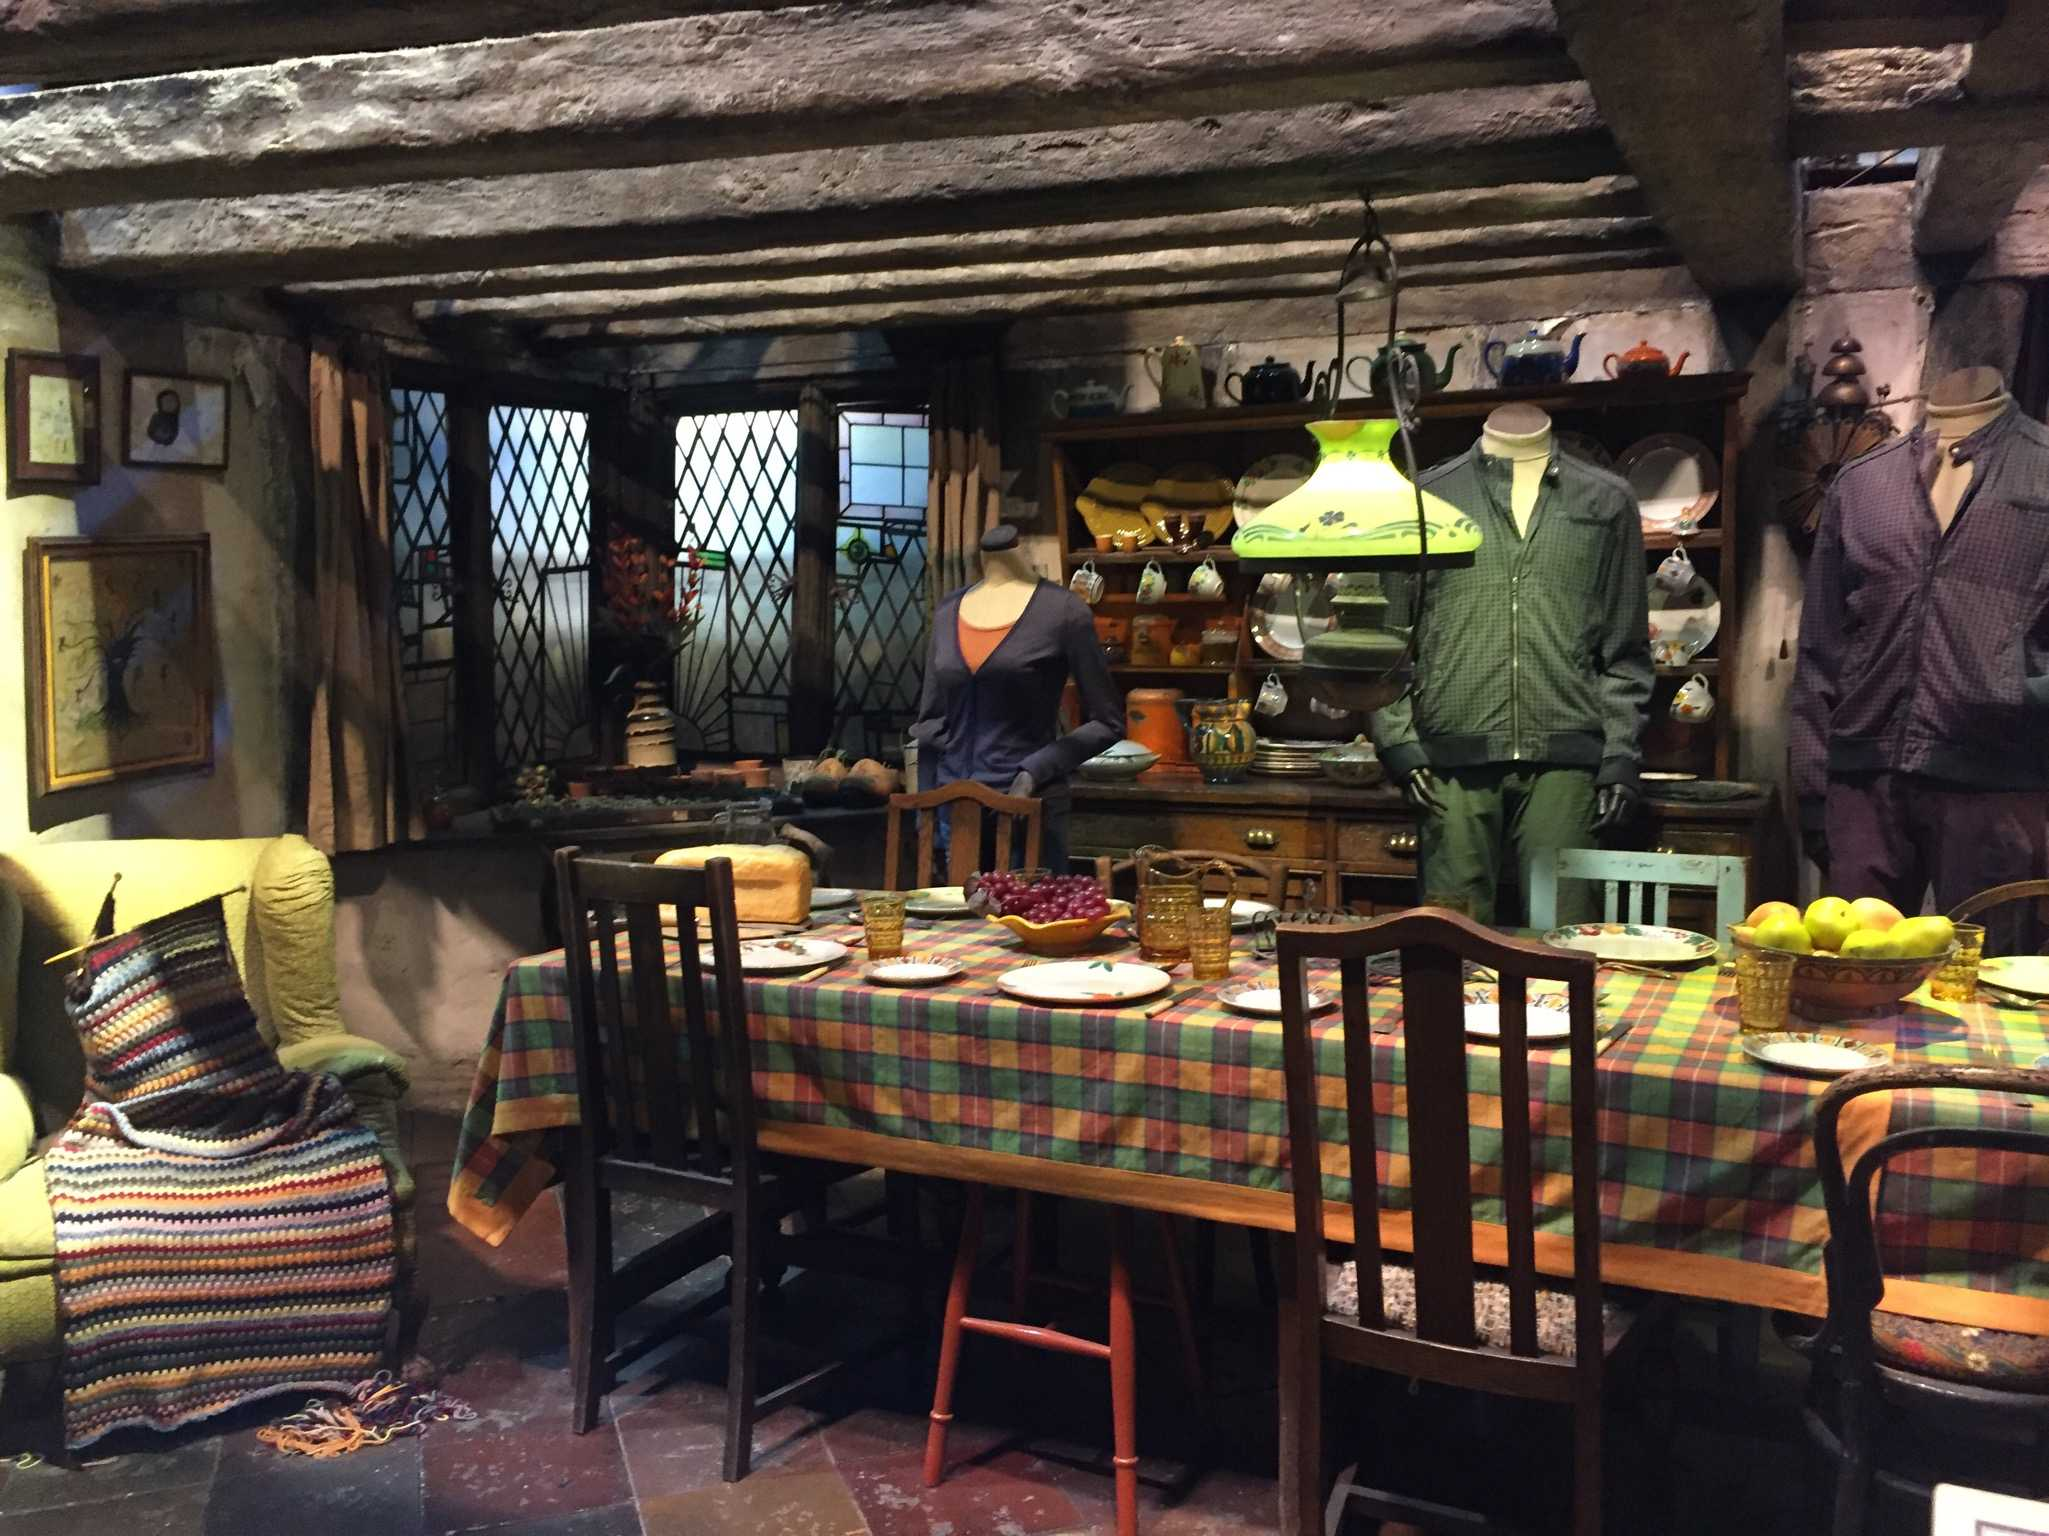 COZY AND CUTE: If you want a place to go where you will always feel welcome, go to The Burrow and hang out with Ron Weasley's family. You can also help Mr. Weasley figure out how to use Muggle items.